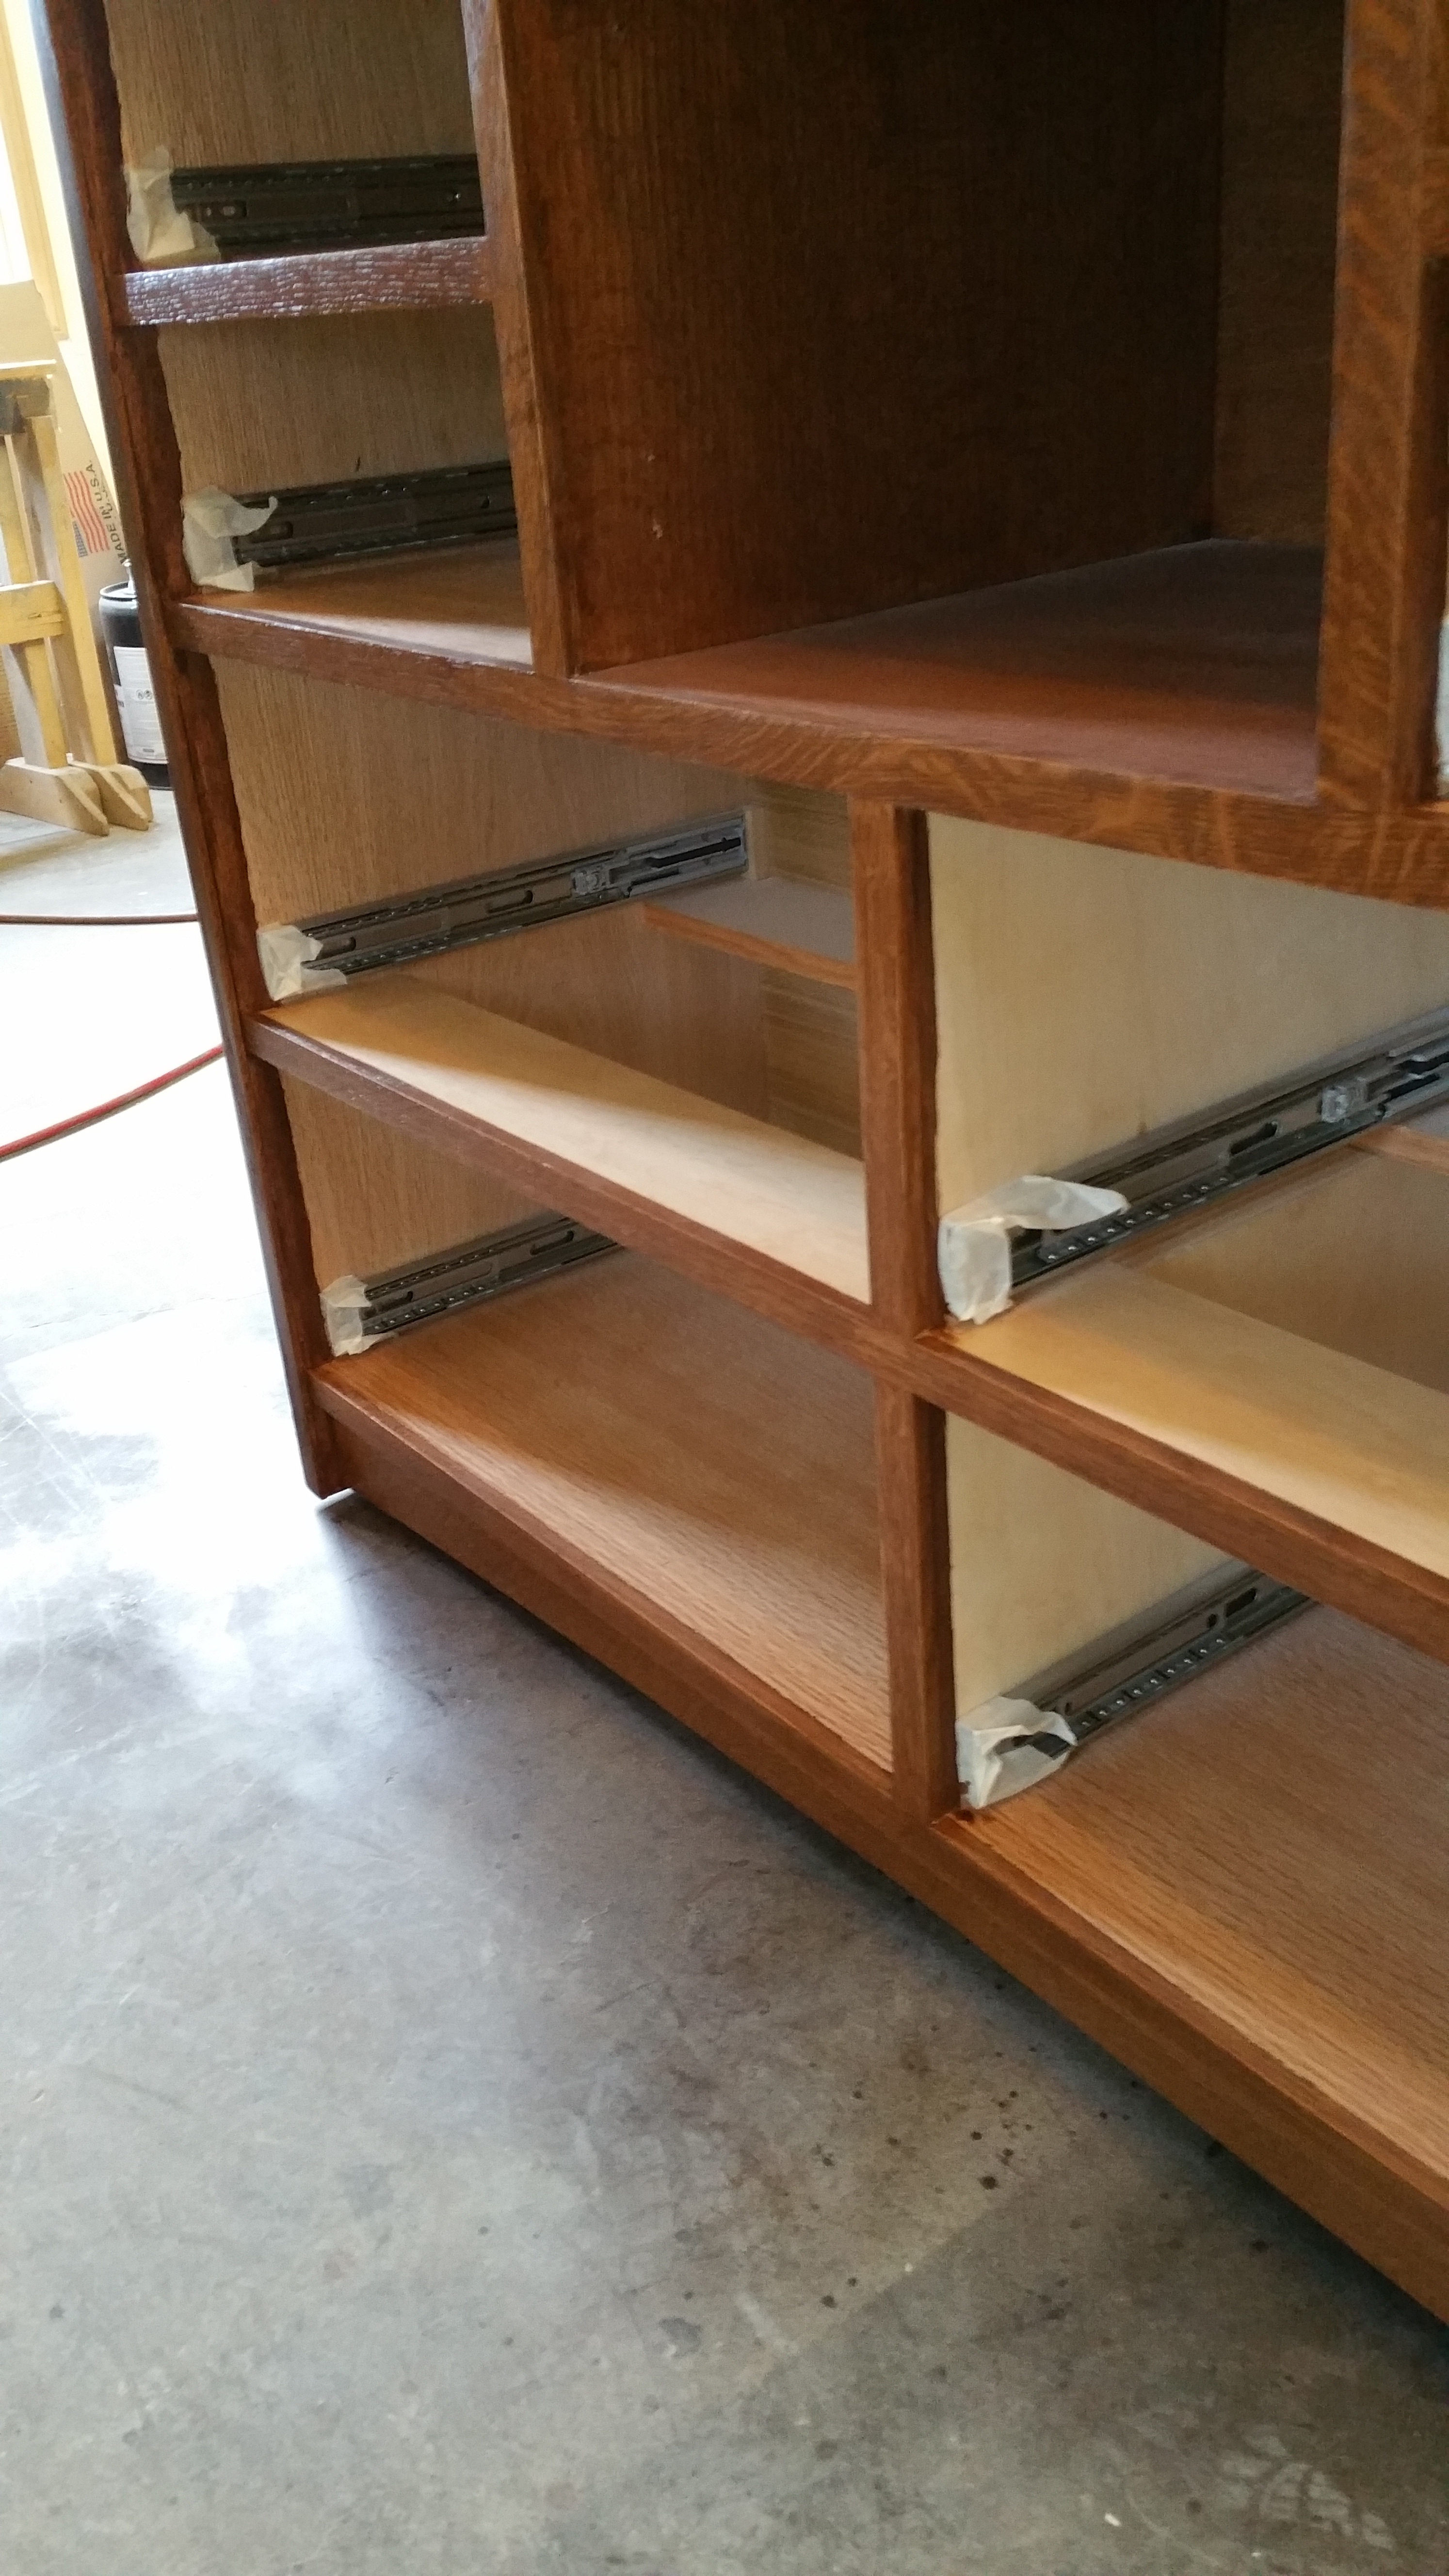 Construction photo showing drawer slides